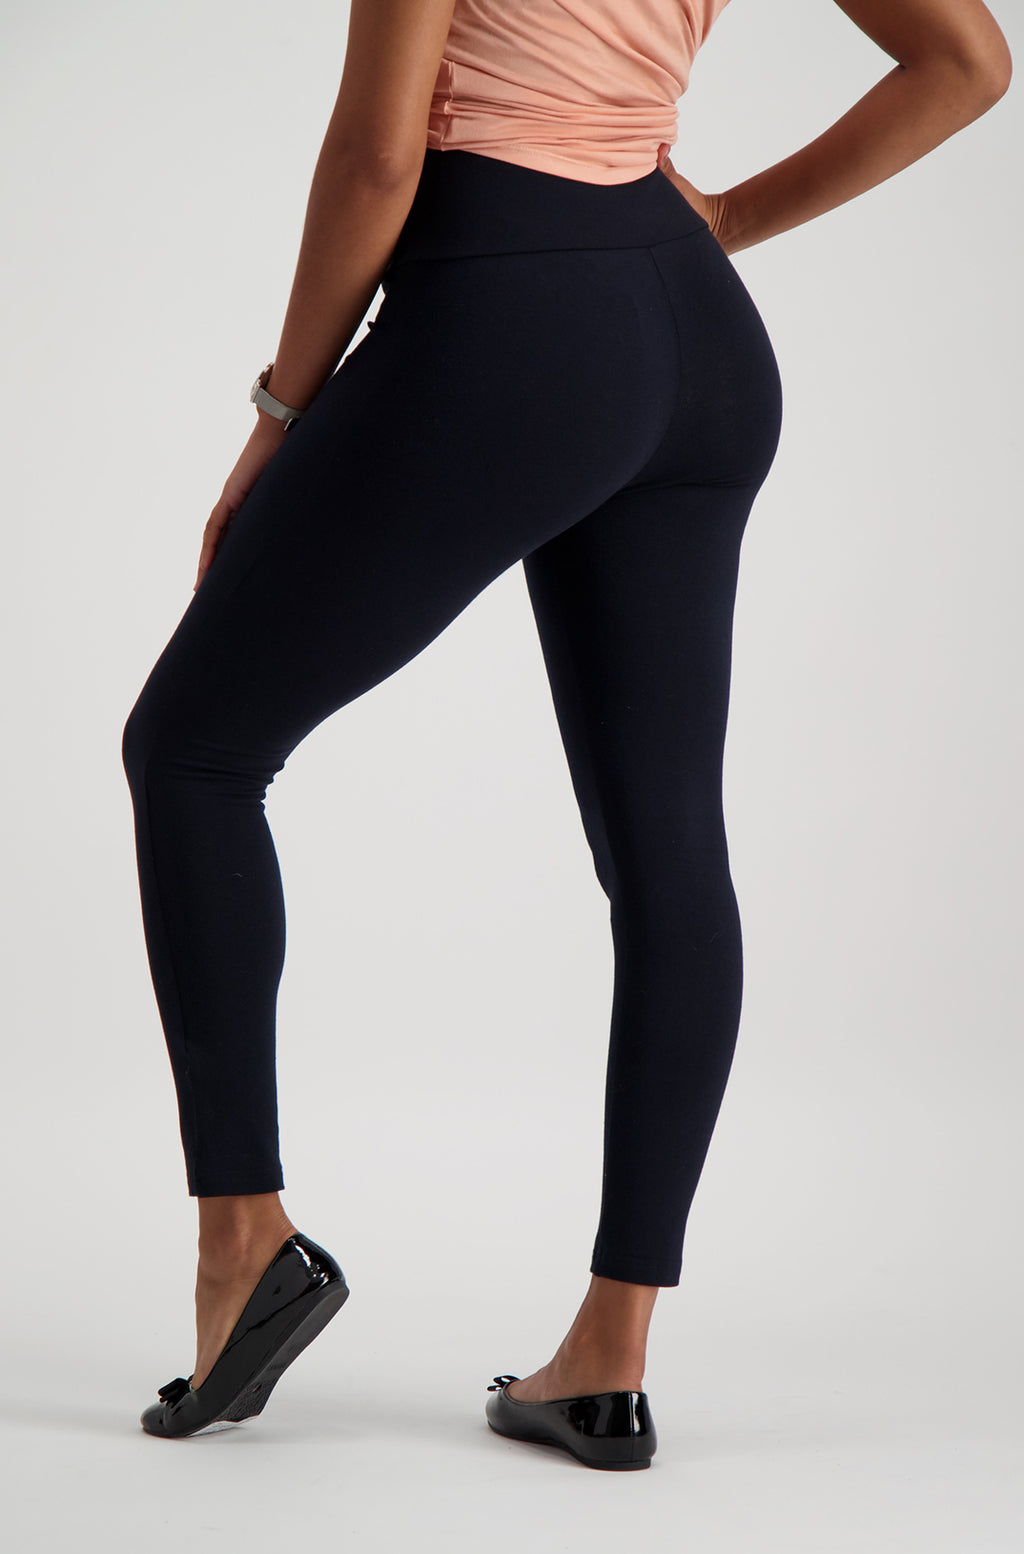 Monroe Legging _ 111170 _ Black